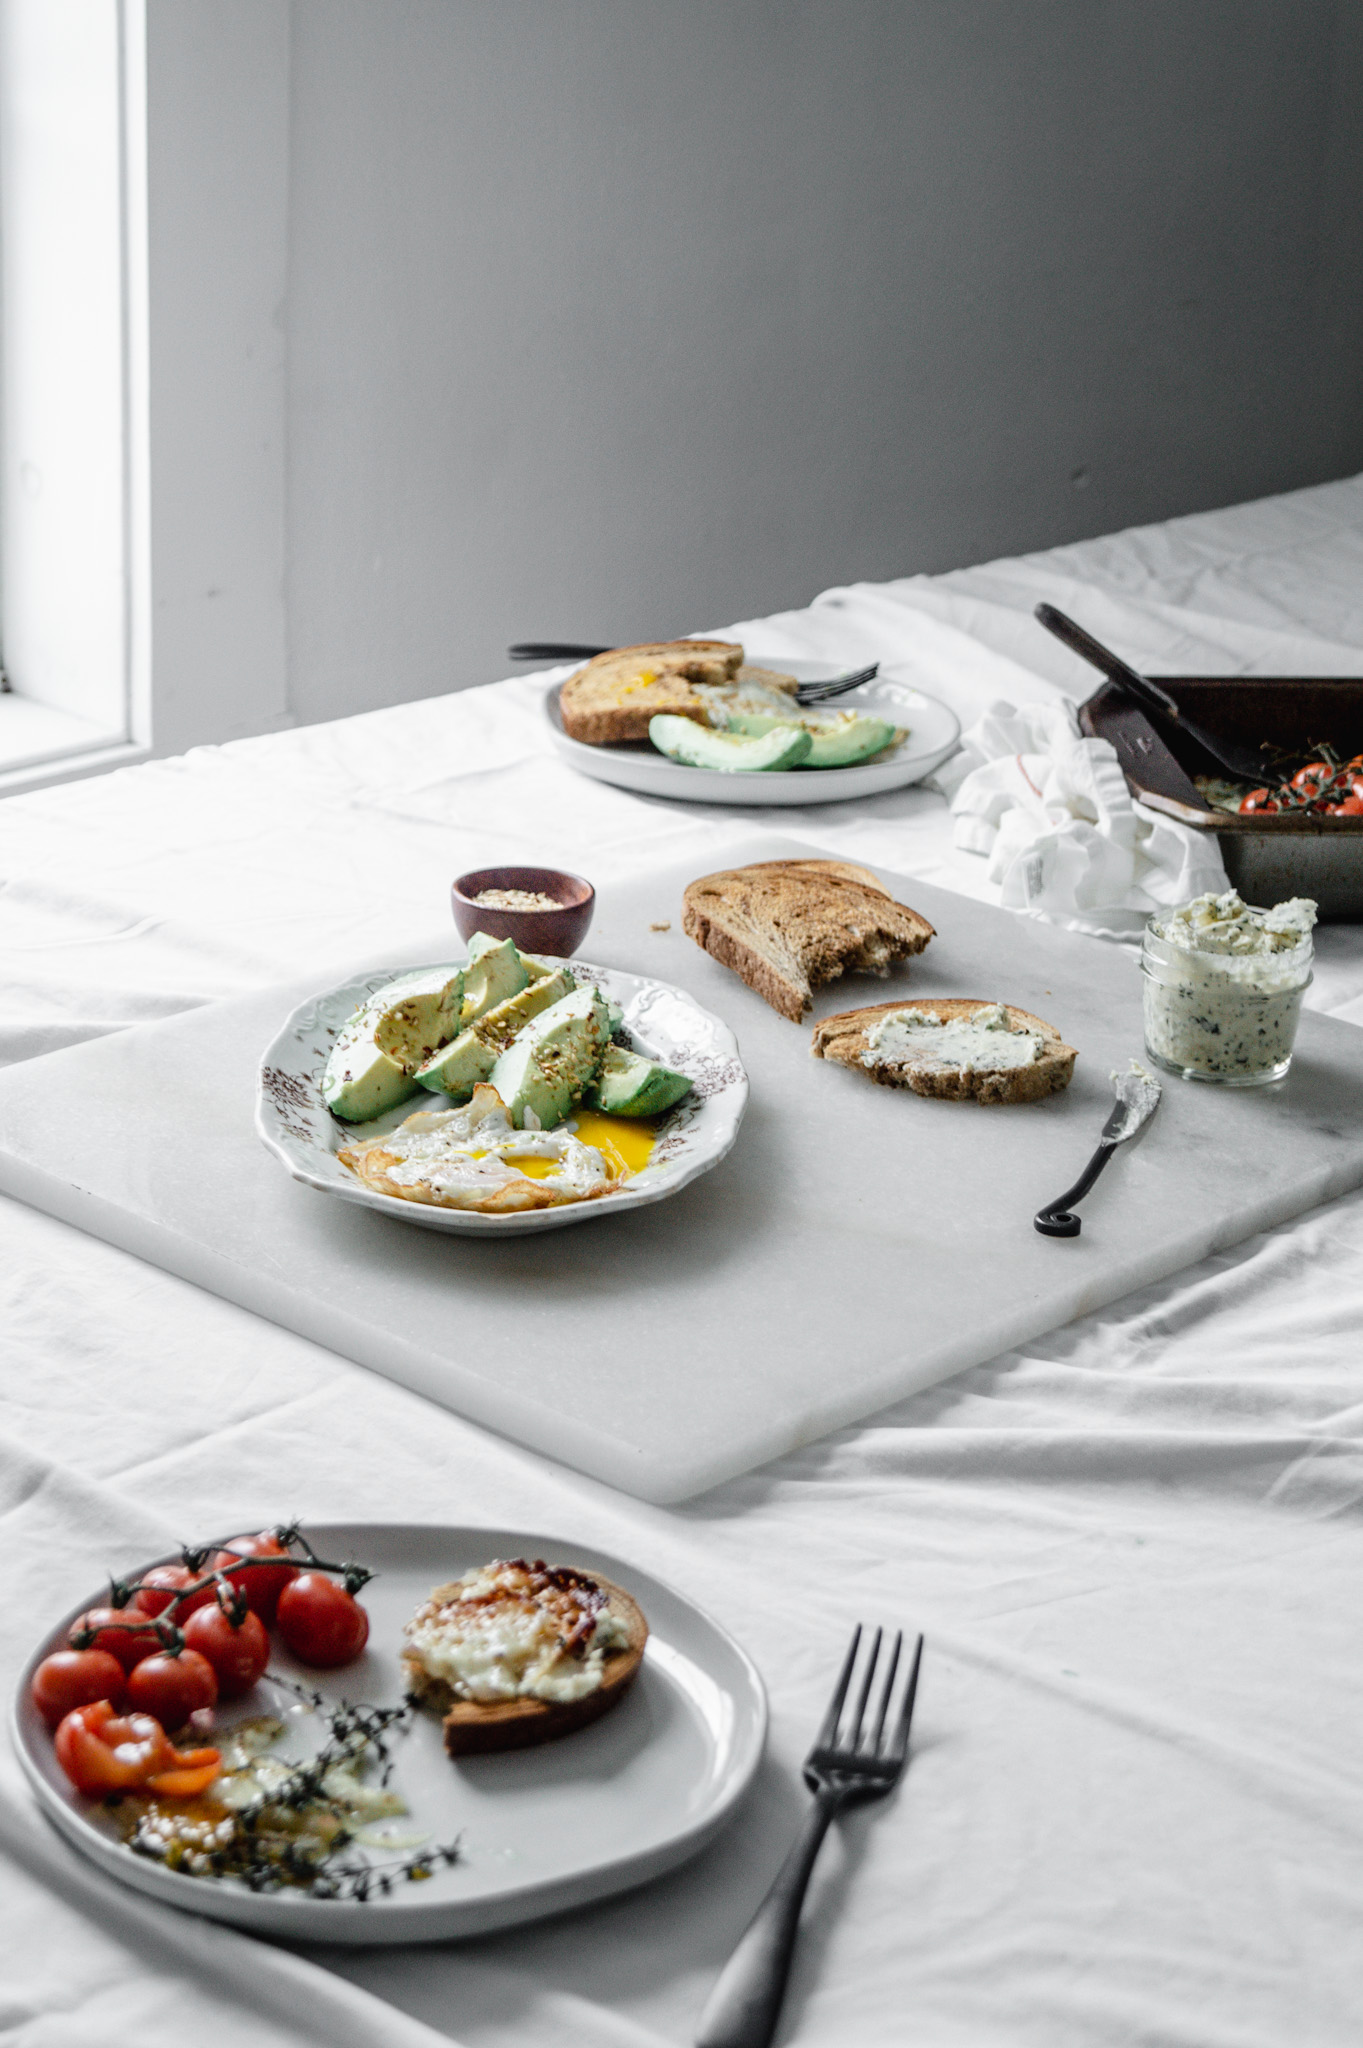 healthy winter brunch ideas: Roasted tomato caprese, seasoned avocados, And fried eggs